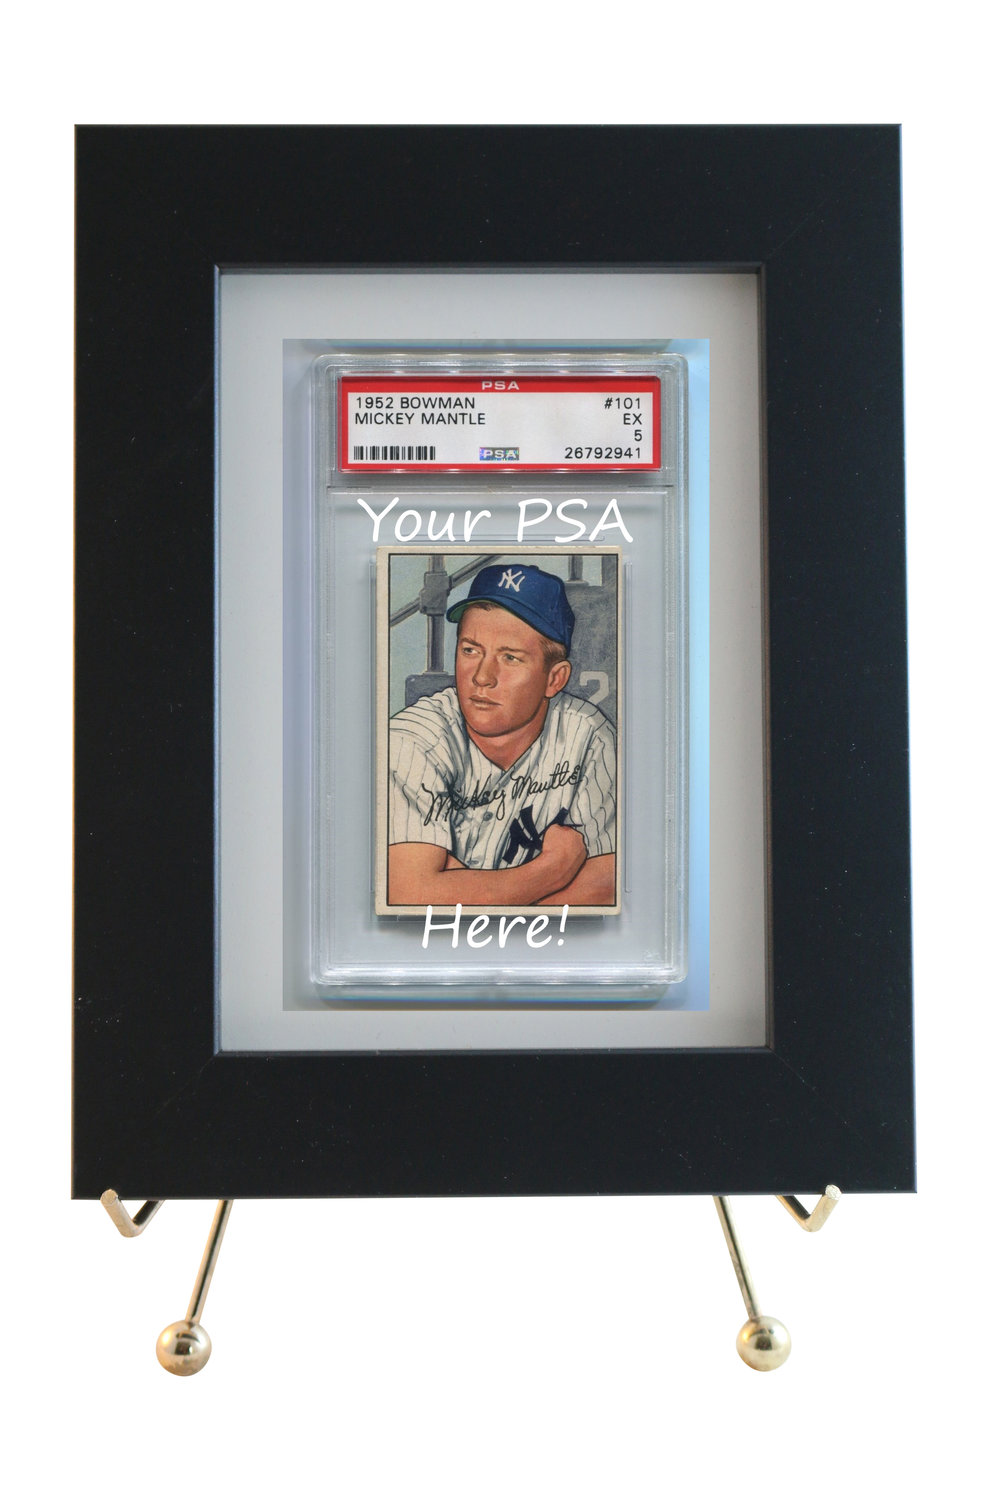 PSA GRADED CARD FRAMED DISPLAYS                     STARTING   AT ONLY $38.95                    VERTICAL OR HORIZONTAL